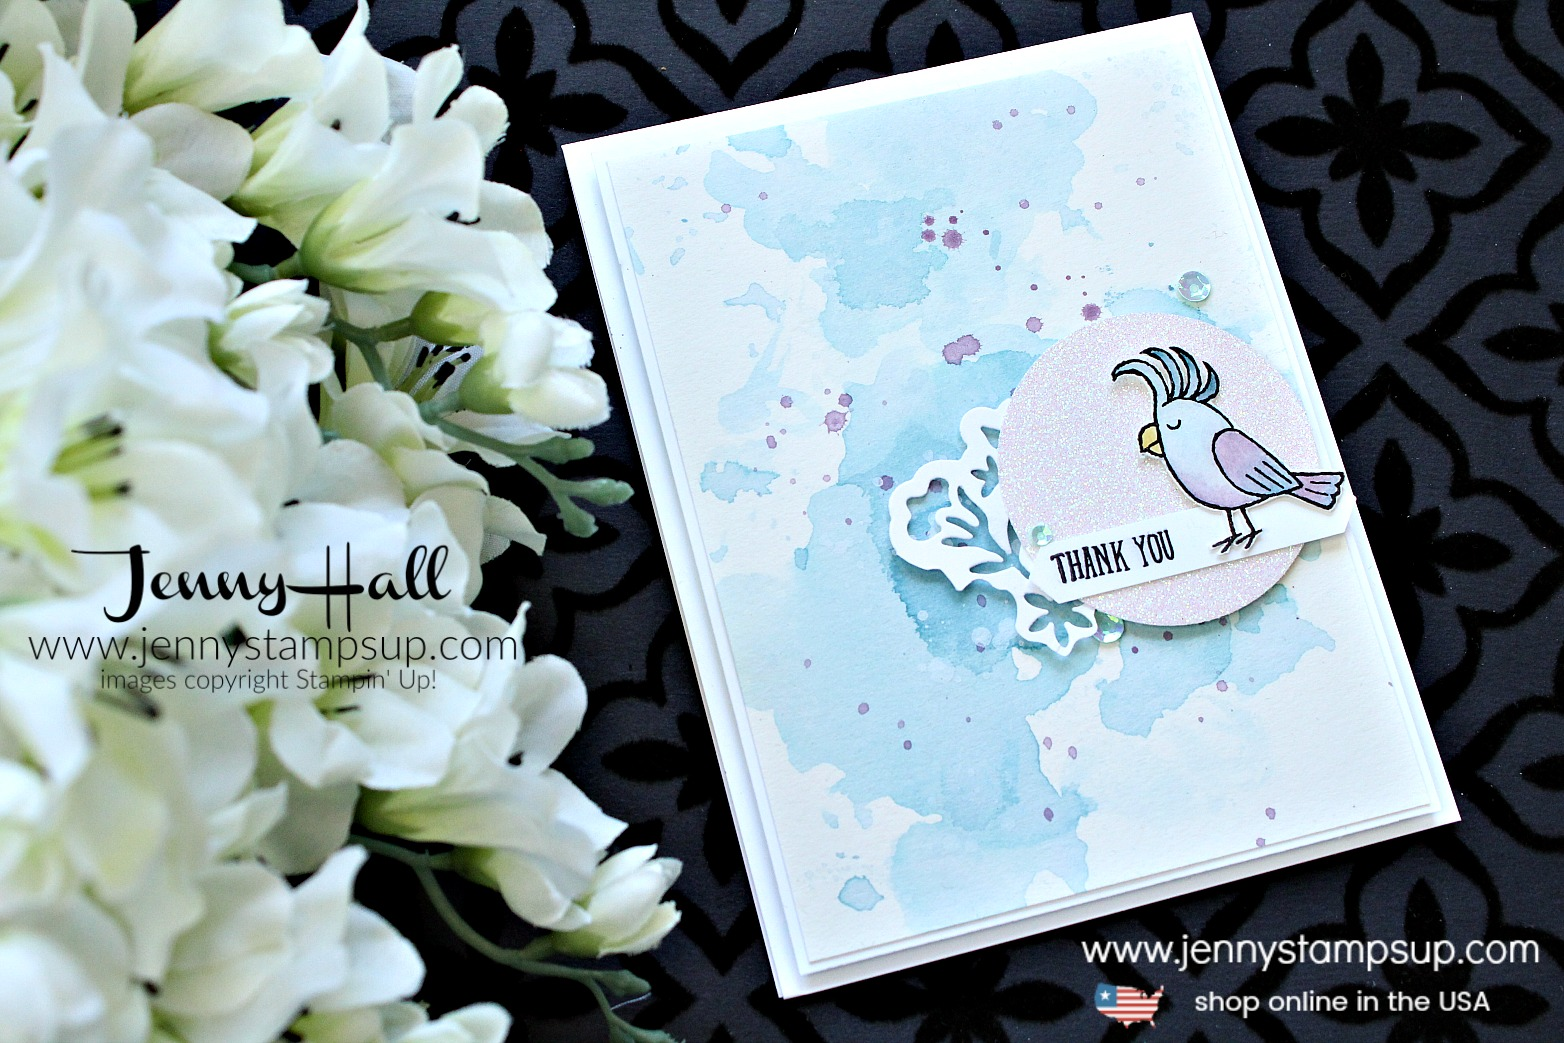 Bird Banter Moonlight card created by Jenny Hall at www.jennystampsup.com for #cardmaking #stamping #stampinup #birdbanter #birdstamp #watercolorsmooshing #detailedfloralthinlits #moonlight #watercolorpainting #crafts #lifestye #diy #jennyhall #jennystampsup #jennyhalldesign #jennyhallstampinup